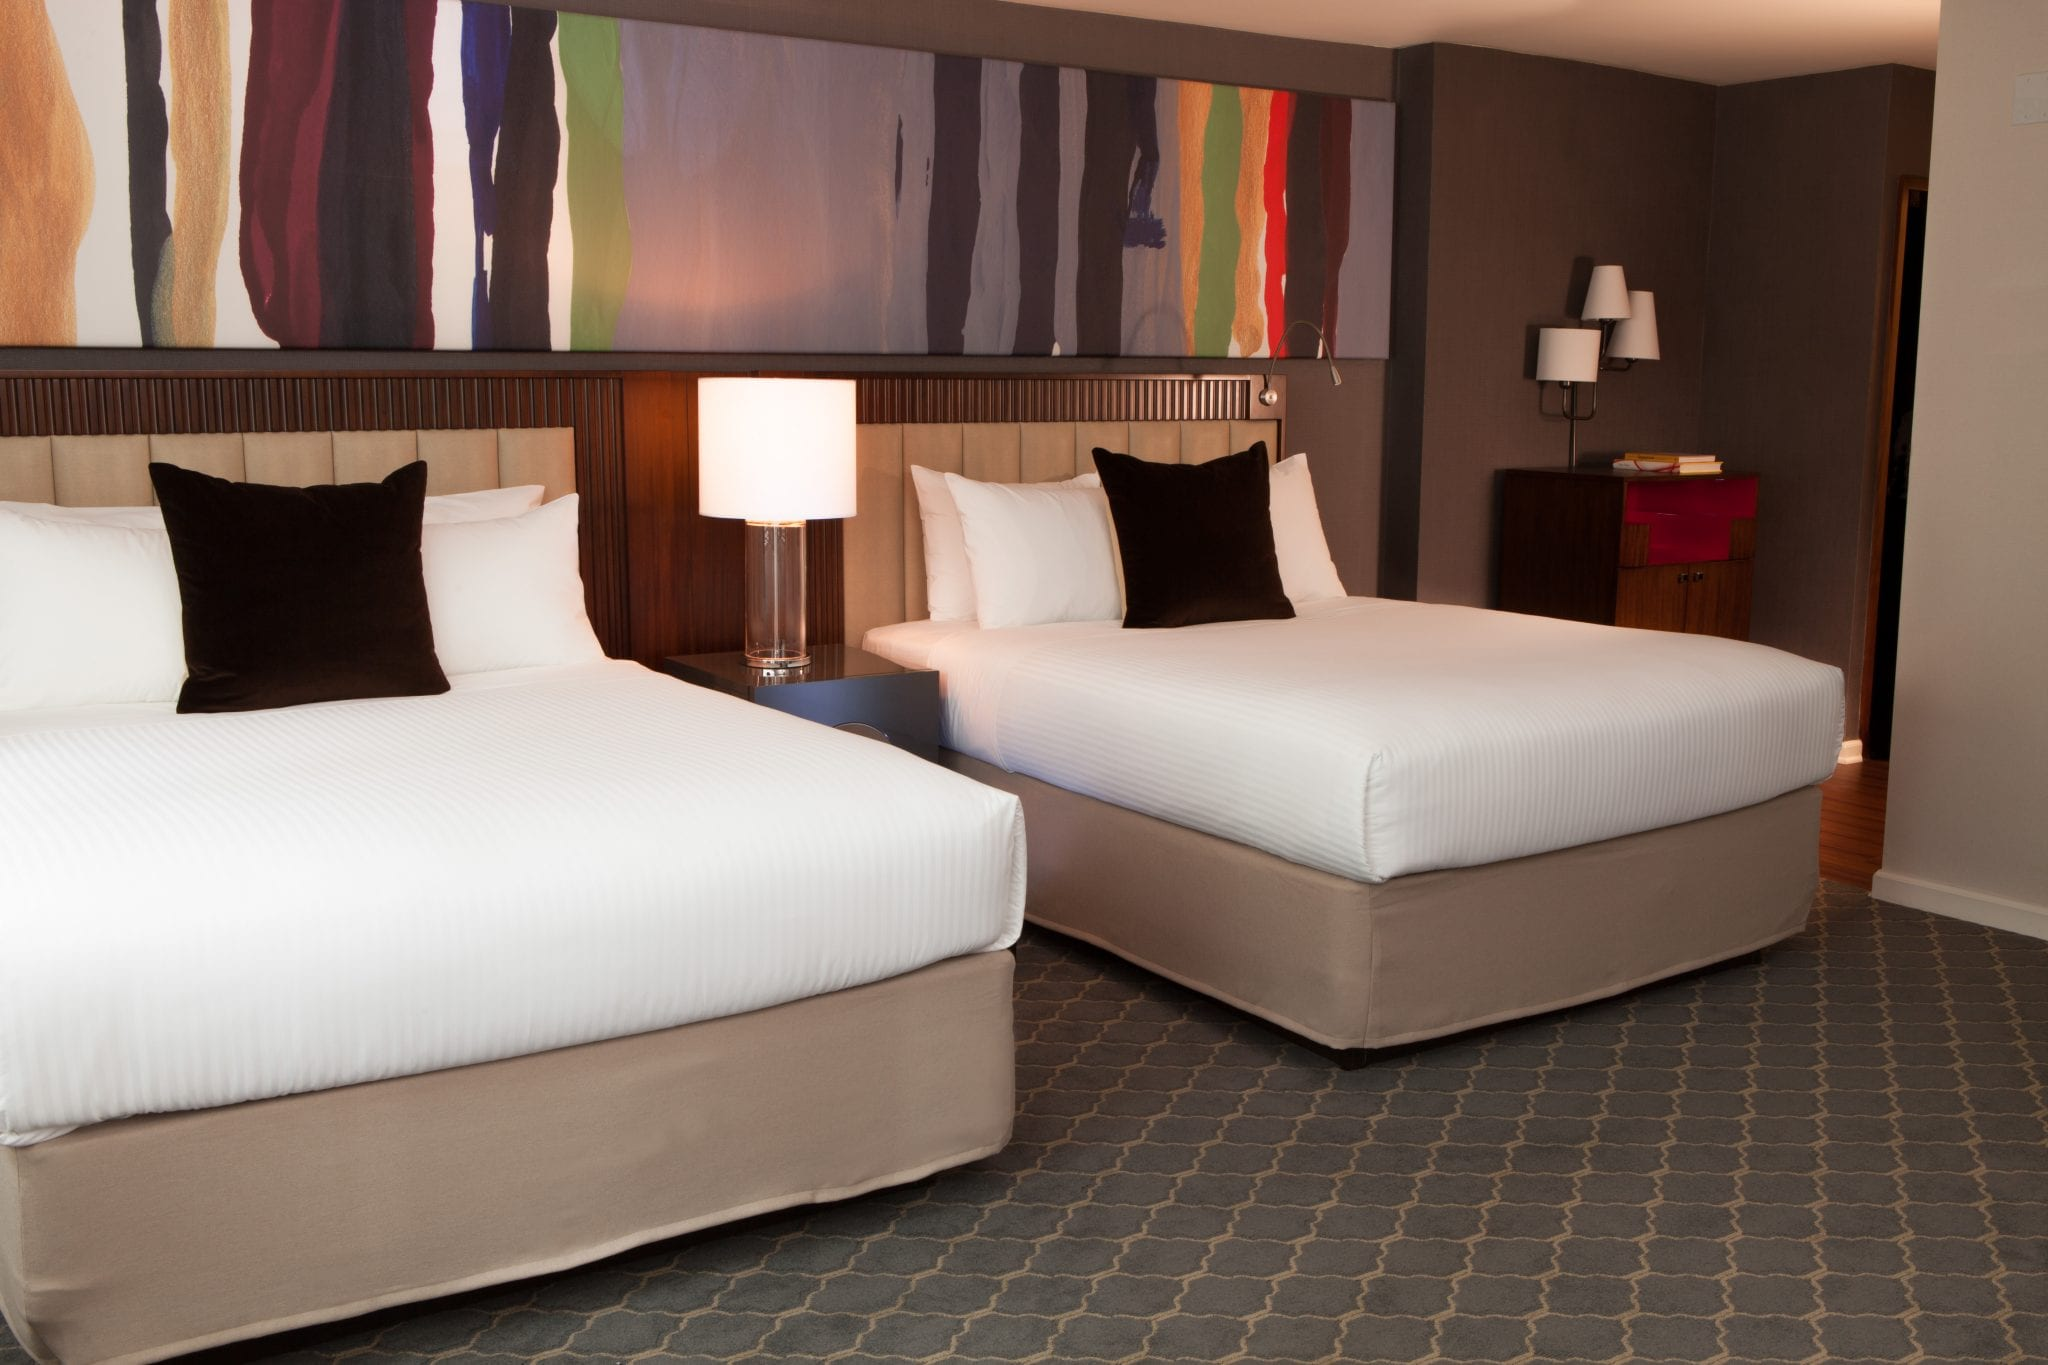 Two queen sized beds set up inside a Fifty Hotel guestroom. A nightstand is placed between the two beds. Above, an art canvas spans the length of these two beds.